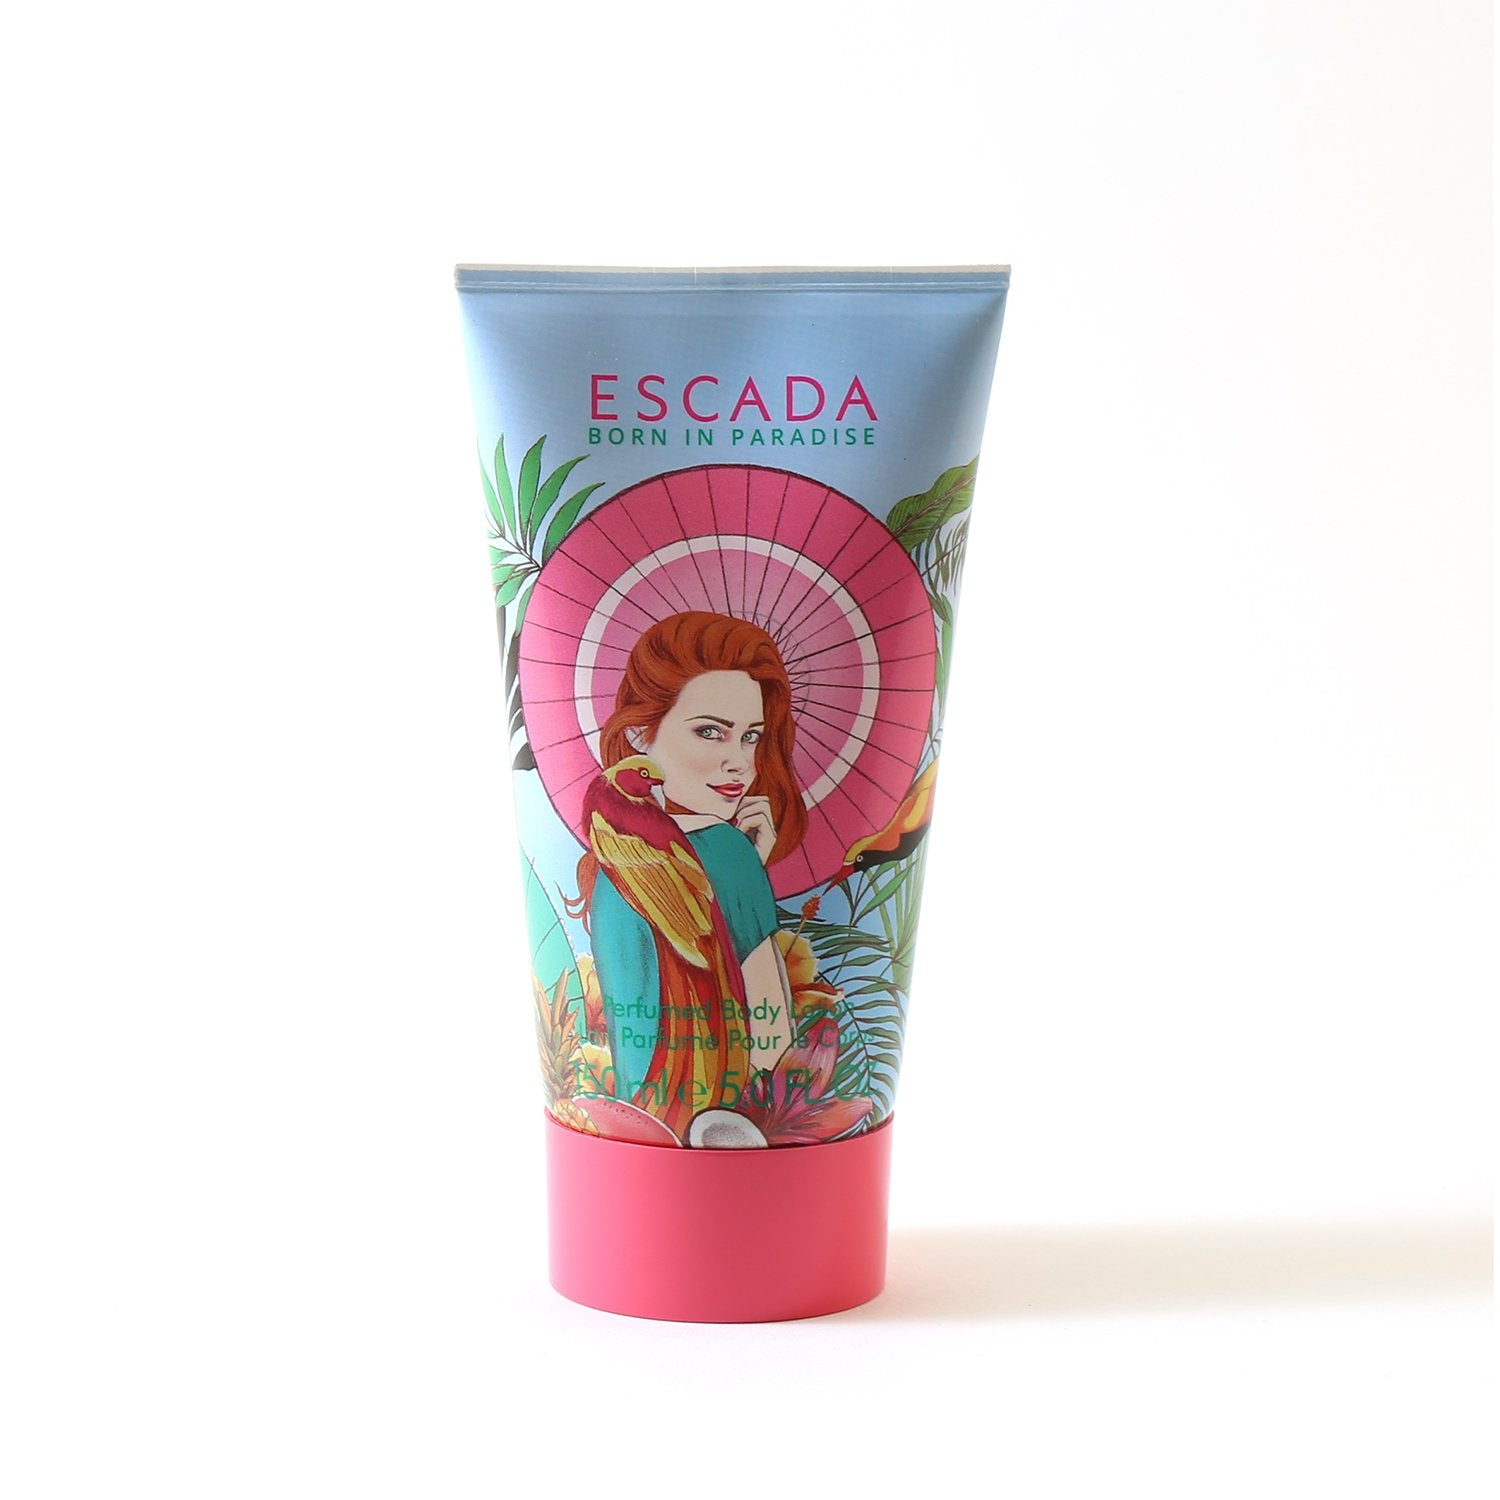 Perfume - ESCADA BORN IN PARADISE FOR WOMEN - BODY LOTION, 5.0 OZ.